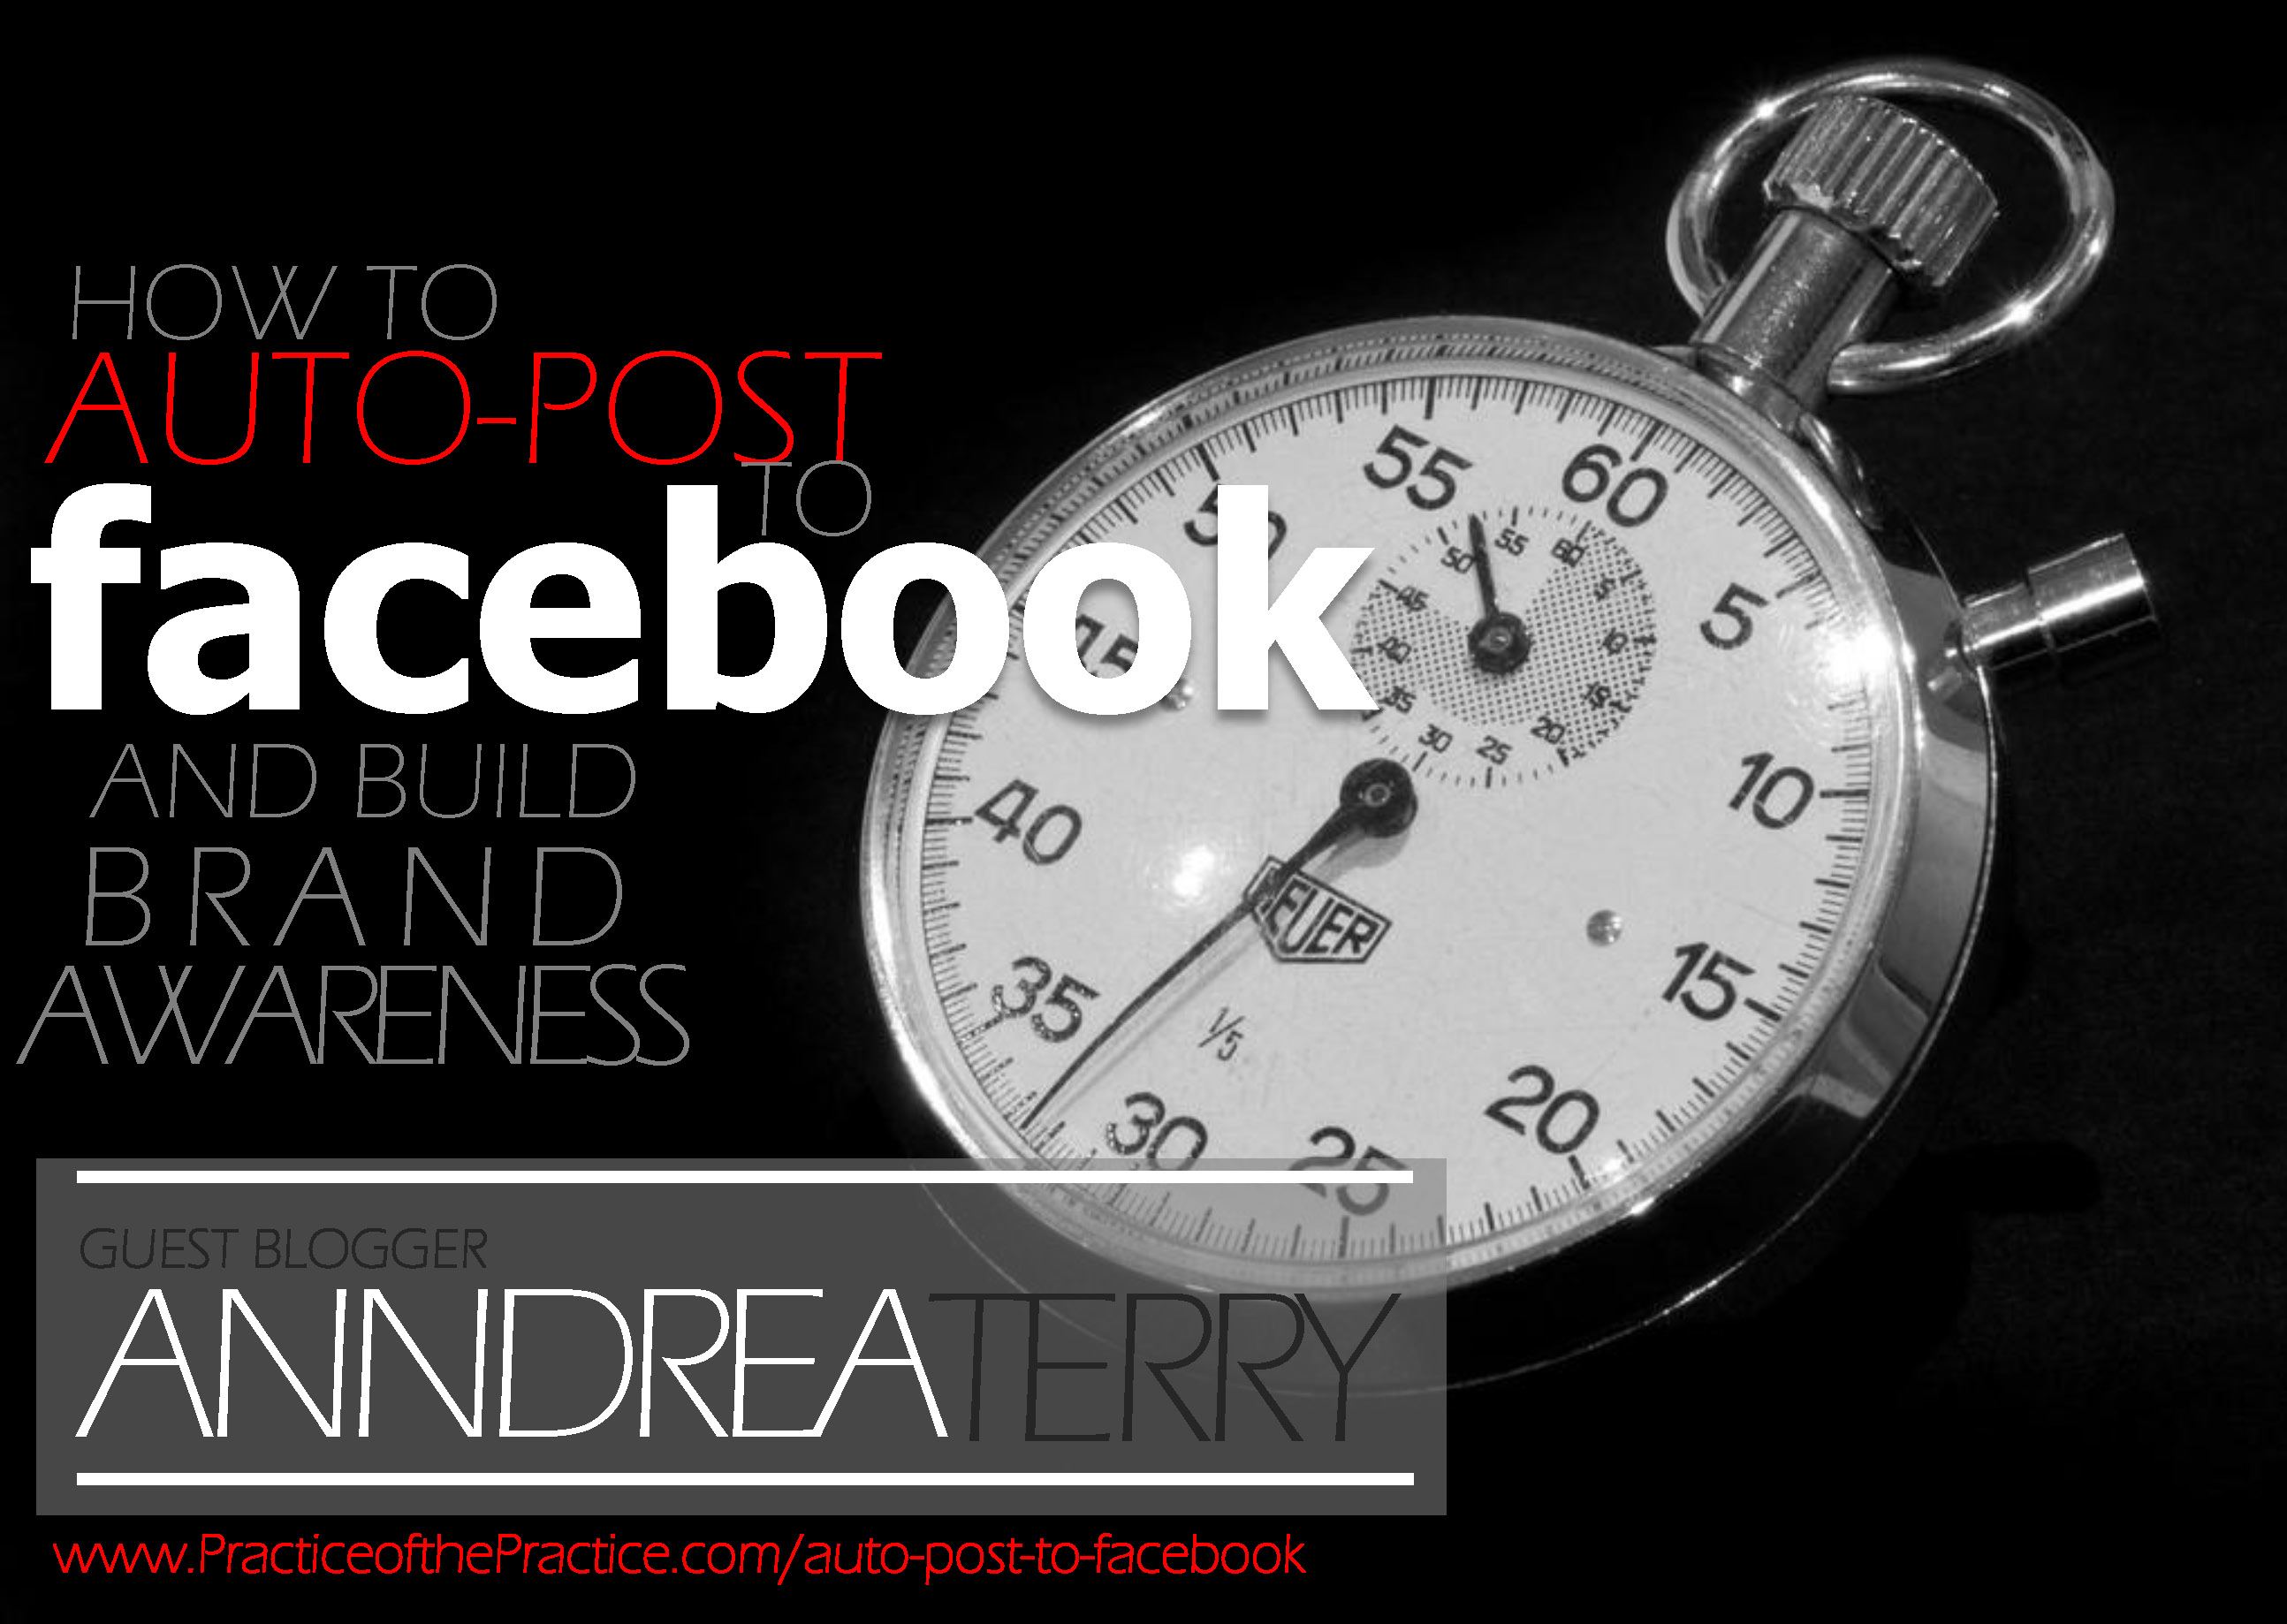 HOW TO AUTO POST FACEBOOK